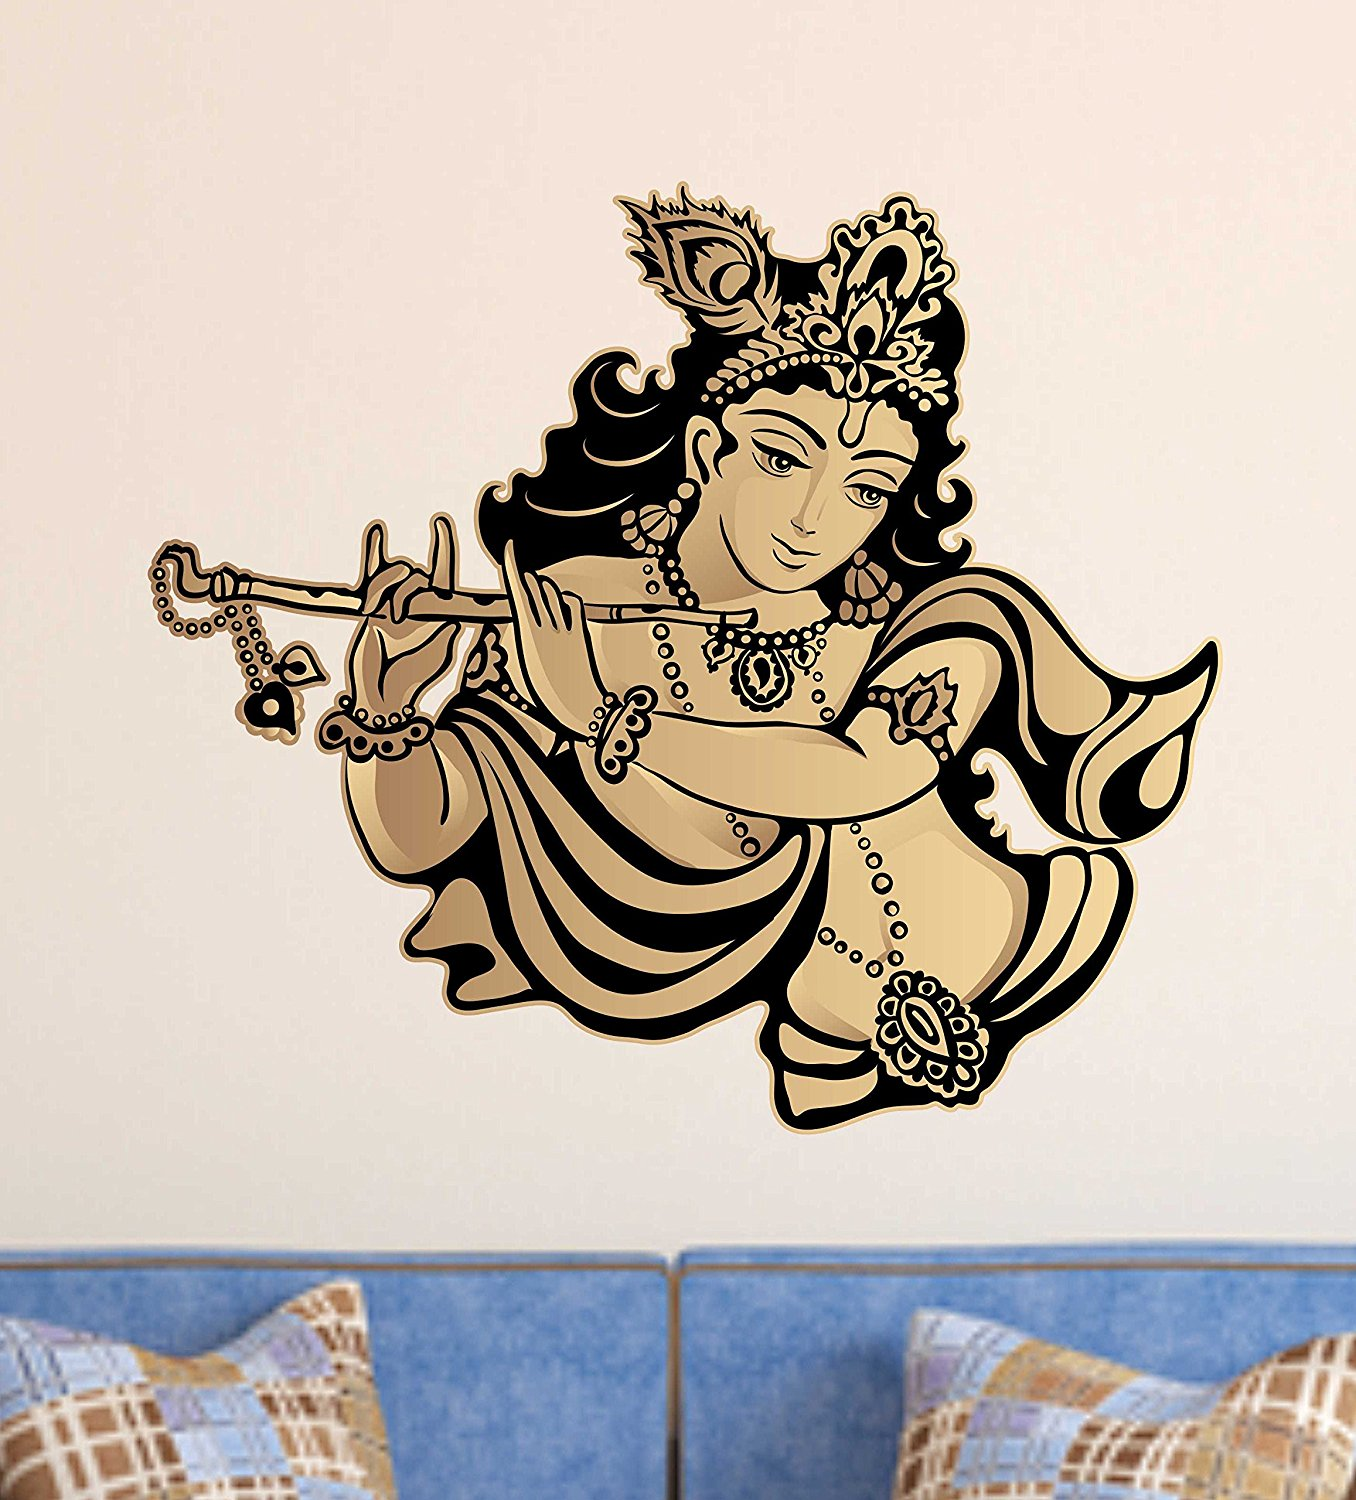 How to apply/paste a Wall Decal at home